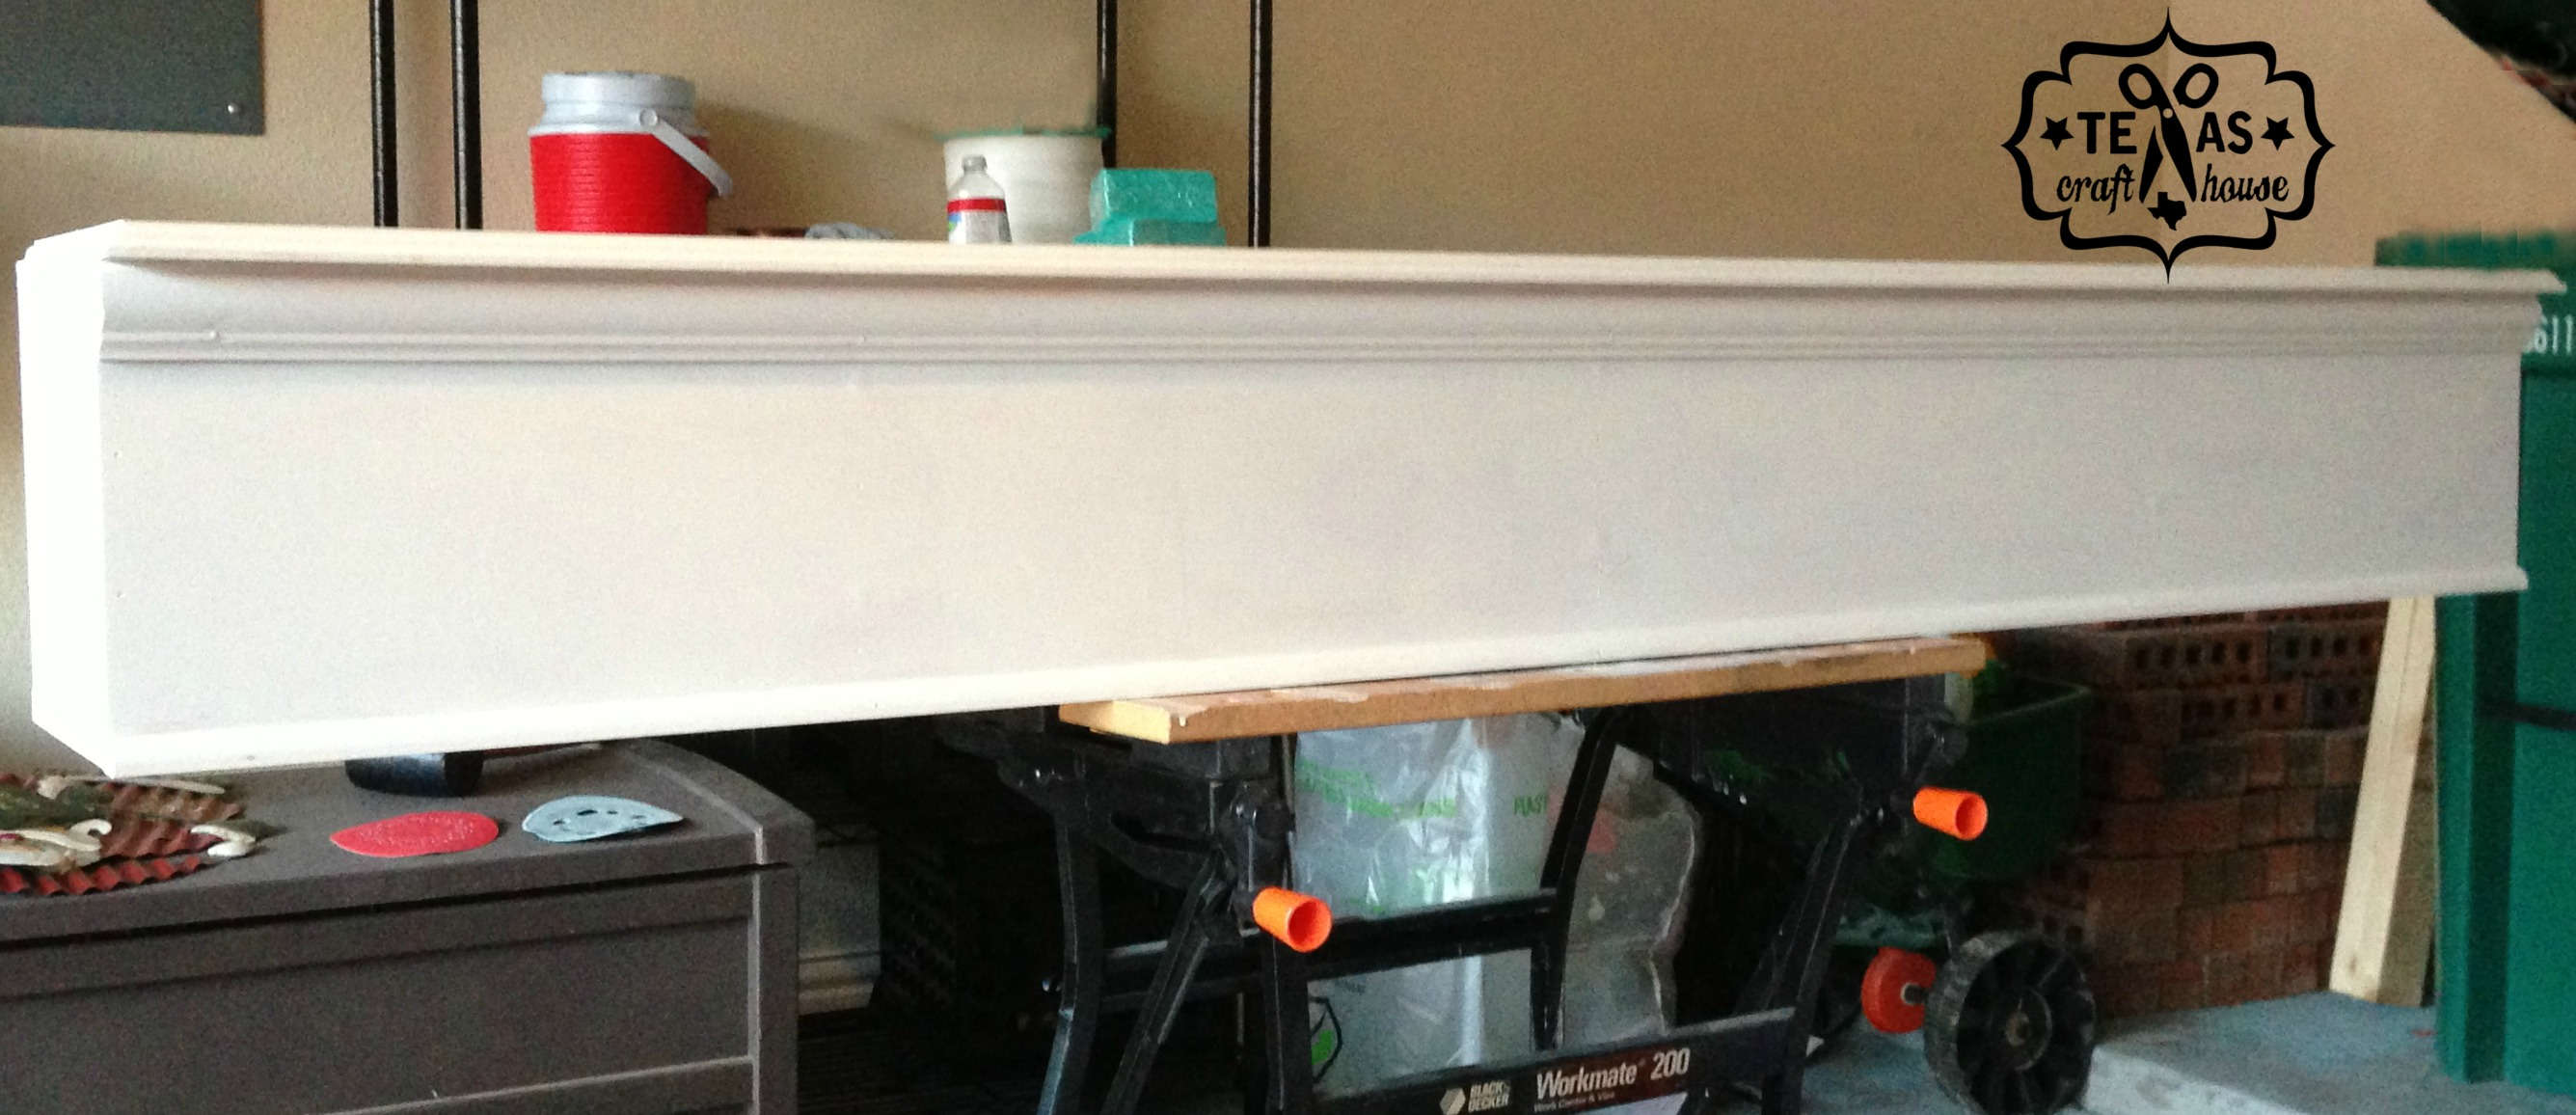 {Texas Craft House} Laundry Room Makeover: Washer & Dryer Storage How-to